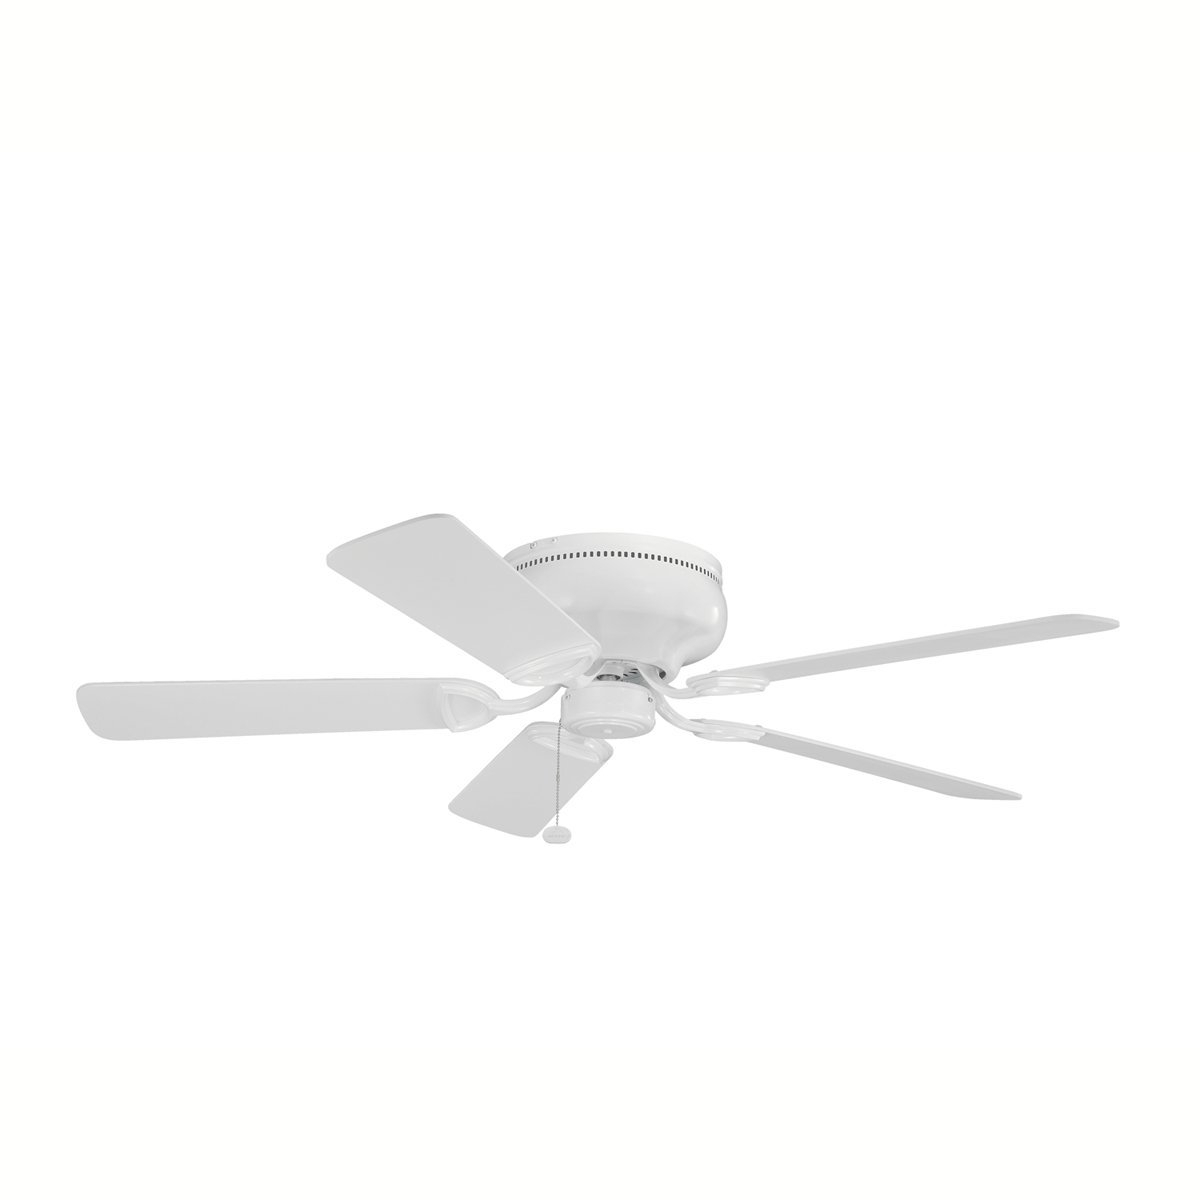 Outdoor Ceiling Fans Without Lights Intended For Recent Flush Mount Ceiling Fans Without Lights Big Outdoor Ceiling Fan With (View 15 of 20)